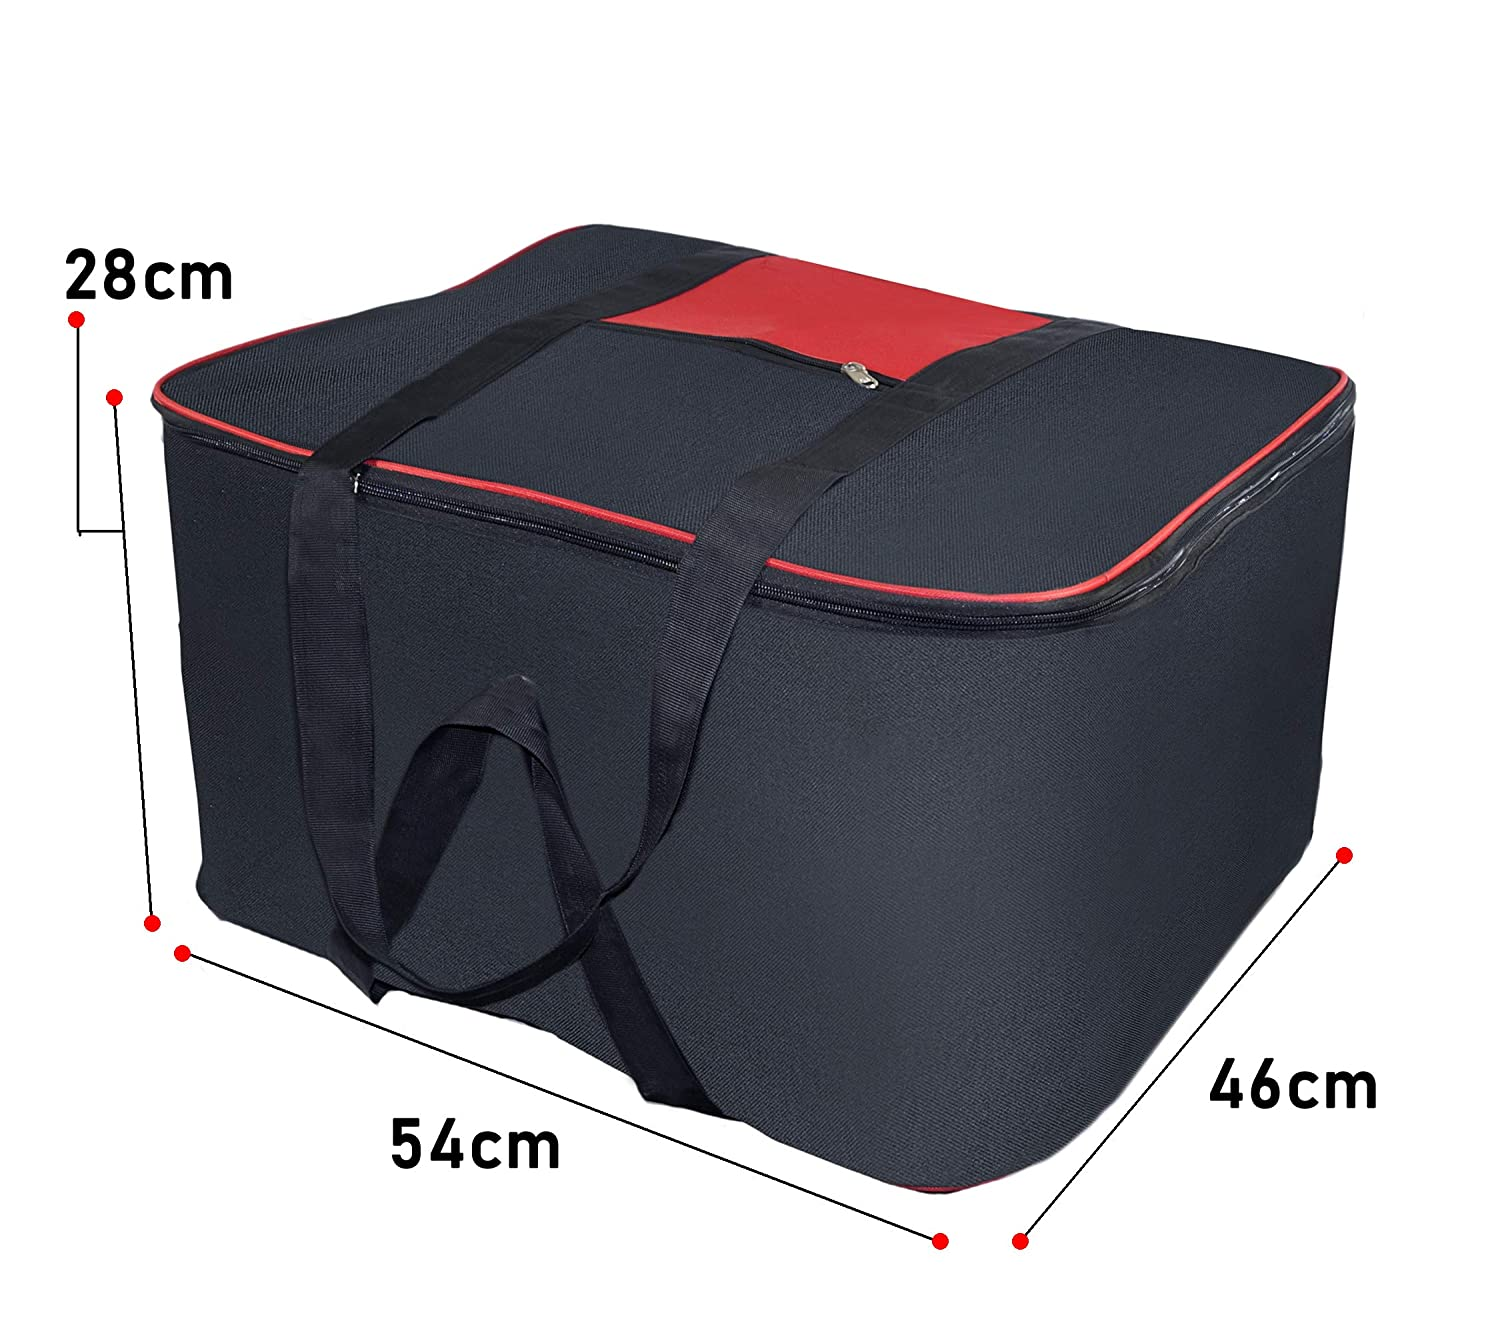 c1e6aa8037d6 Storite Nylon Big Underbed Storage Bag Moisture Proof Cloth Organiser with  Zippered Closure and Handle(BlackRed, 54x46x28cm): Amazon.in: Home & Kitchen